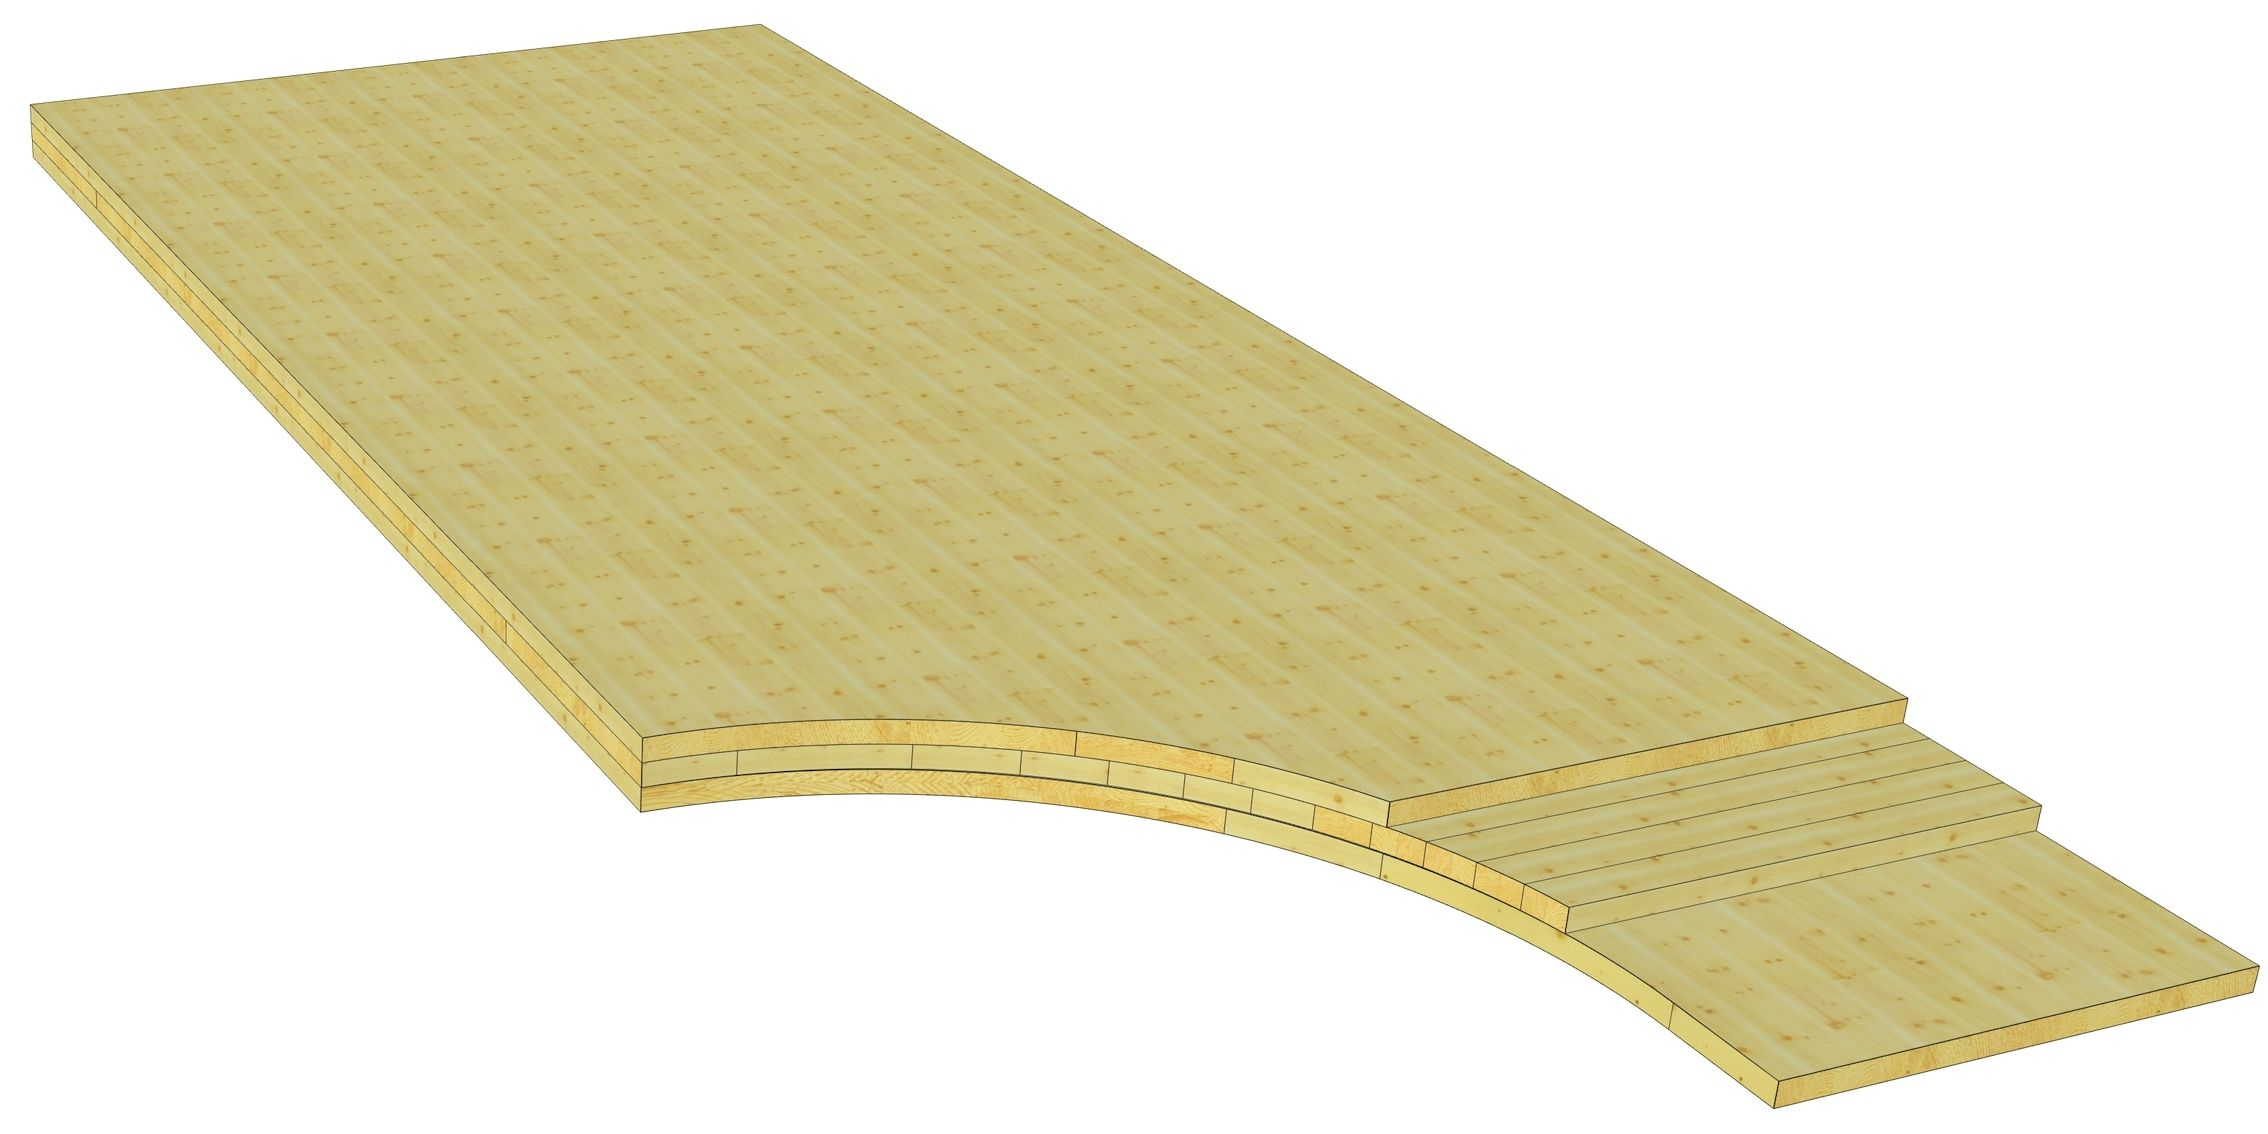 Cross laminated timber CLT